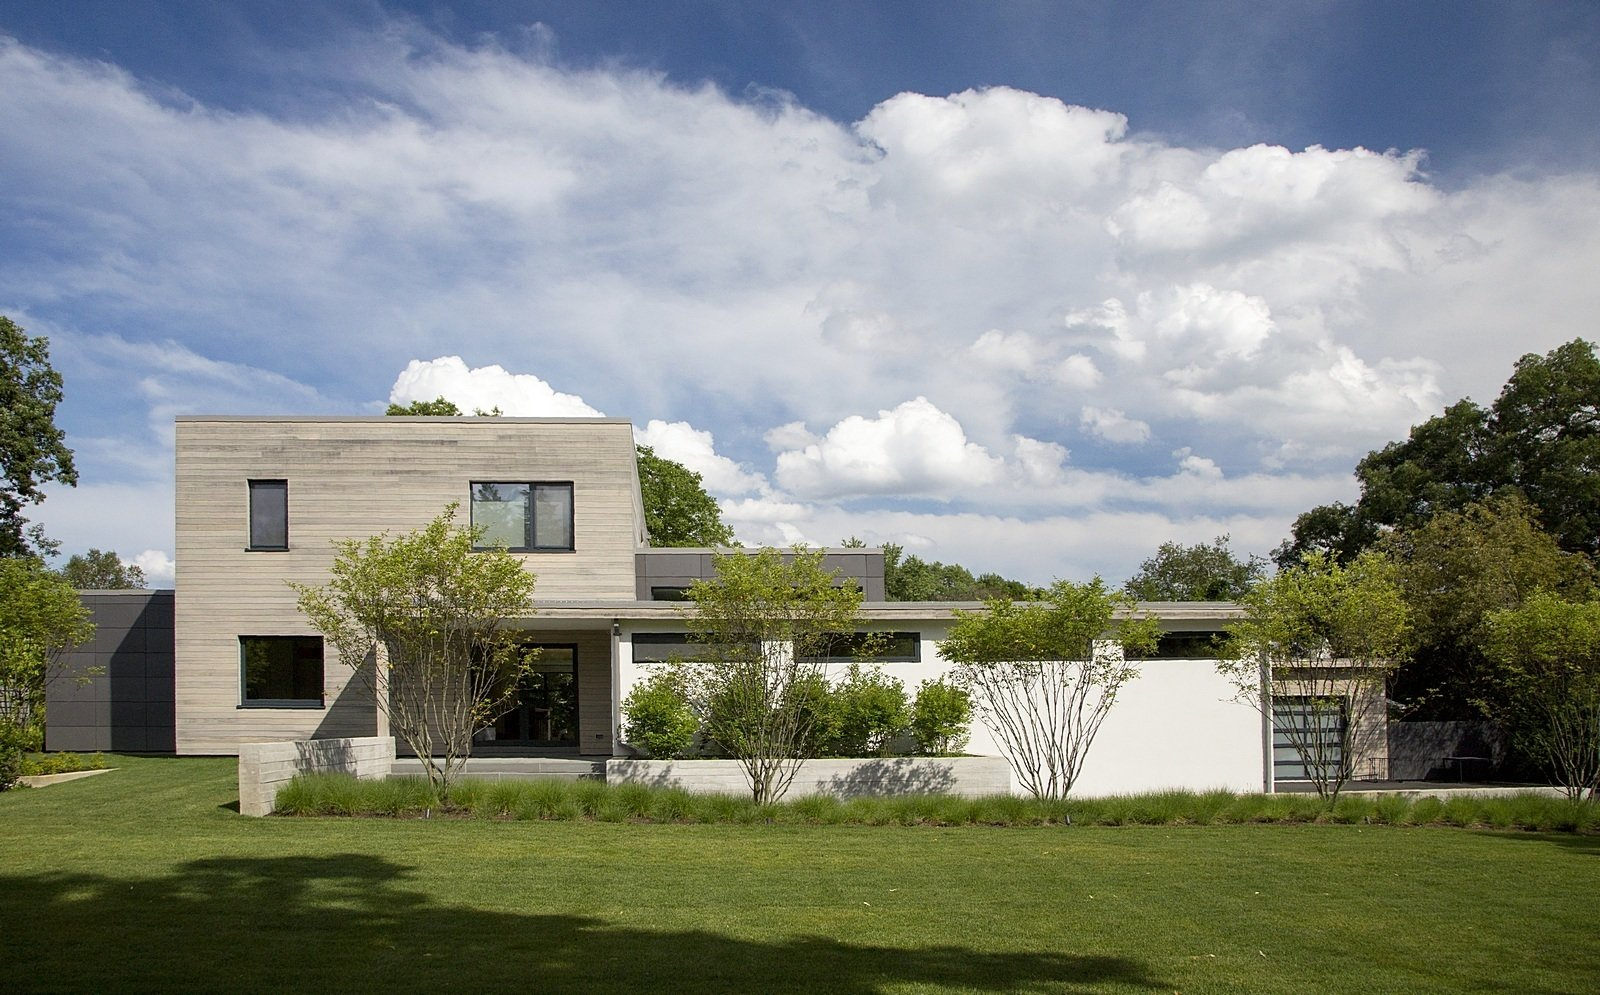 Exterior, House Building Type, and Wood Siding Material With its green features, durable materials, and clean-lined minimalism, the house represents the new generation of building for its mostly colonial neighborhood.  A Modern Green Home in a Historic Colonial Town by Allie Weiss